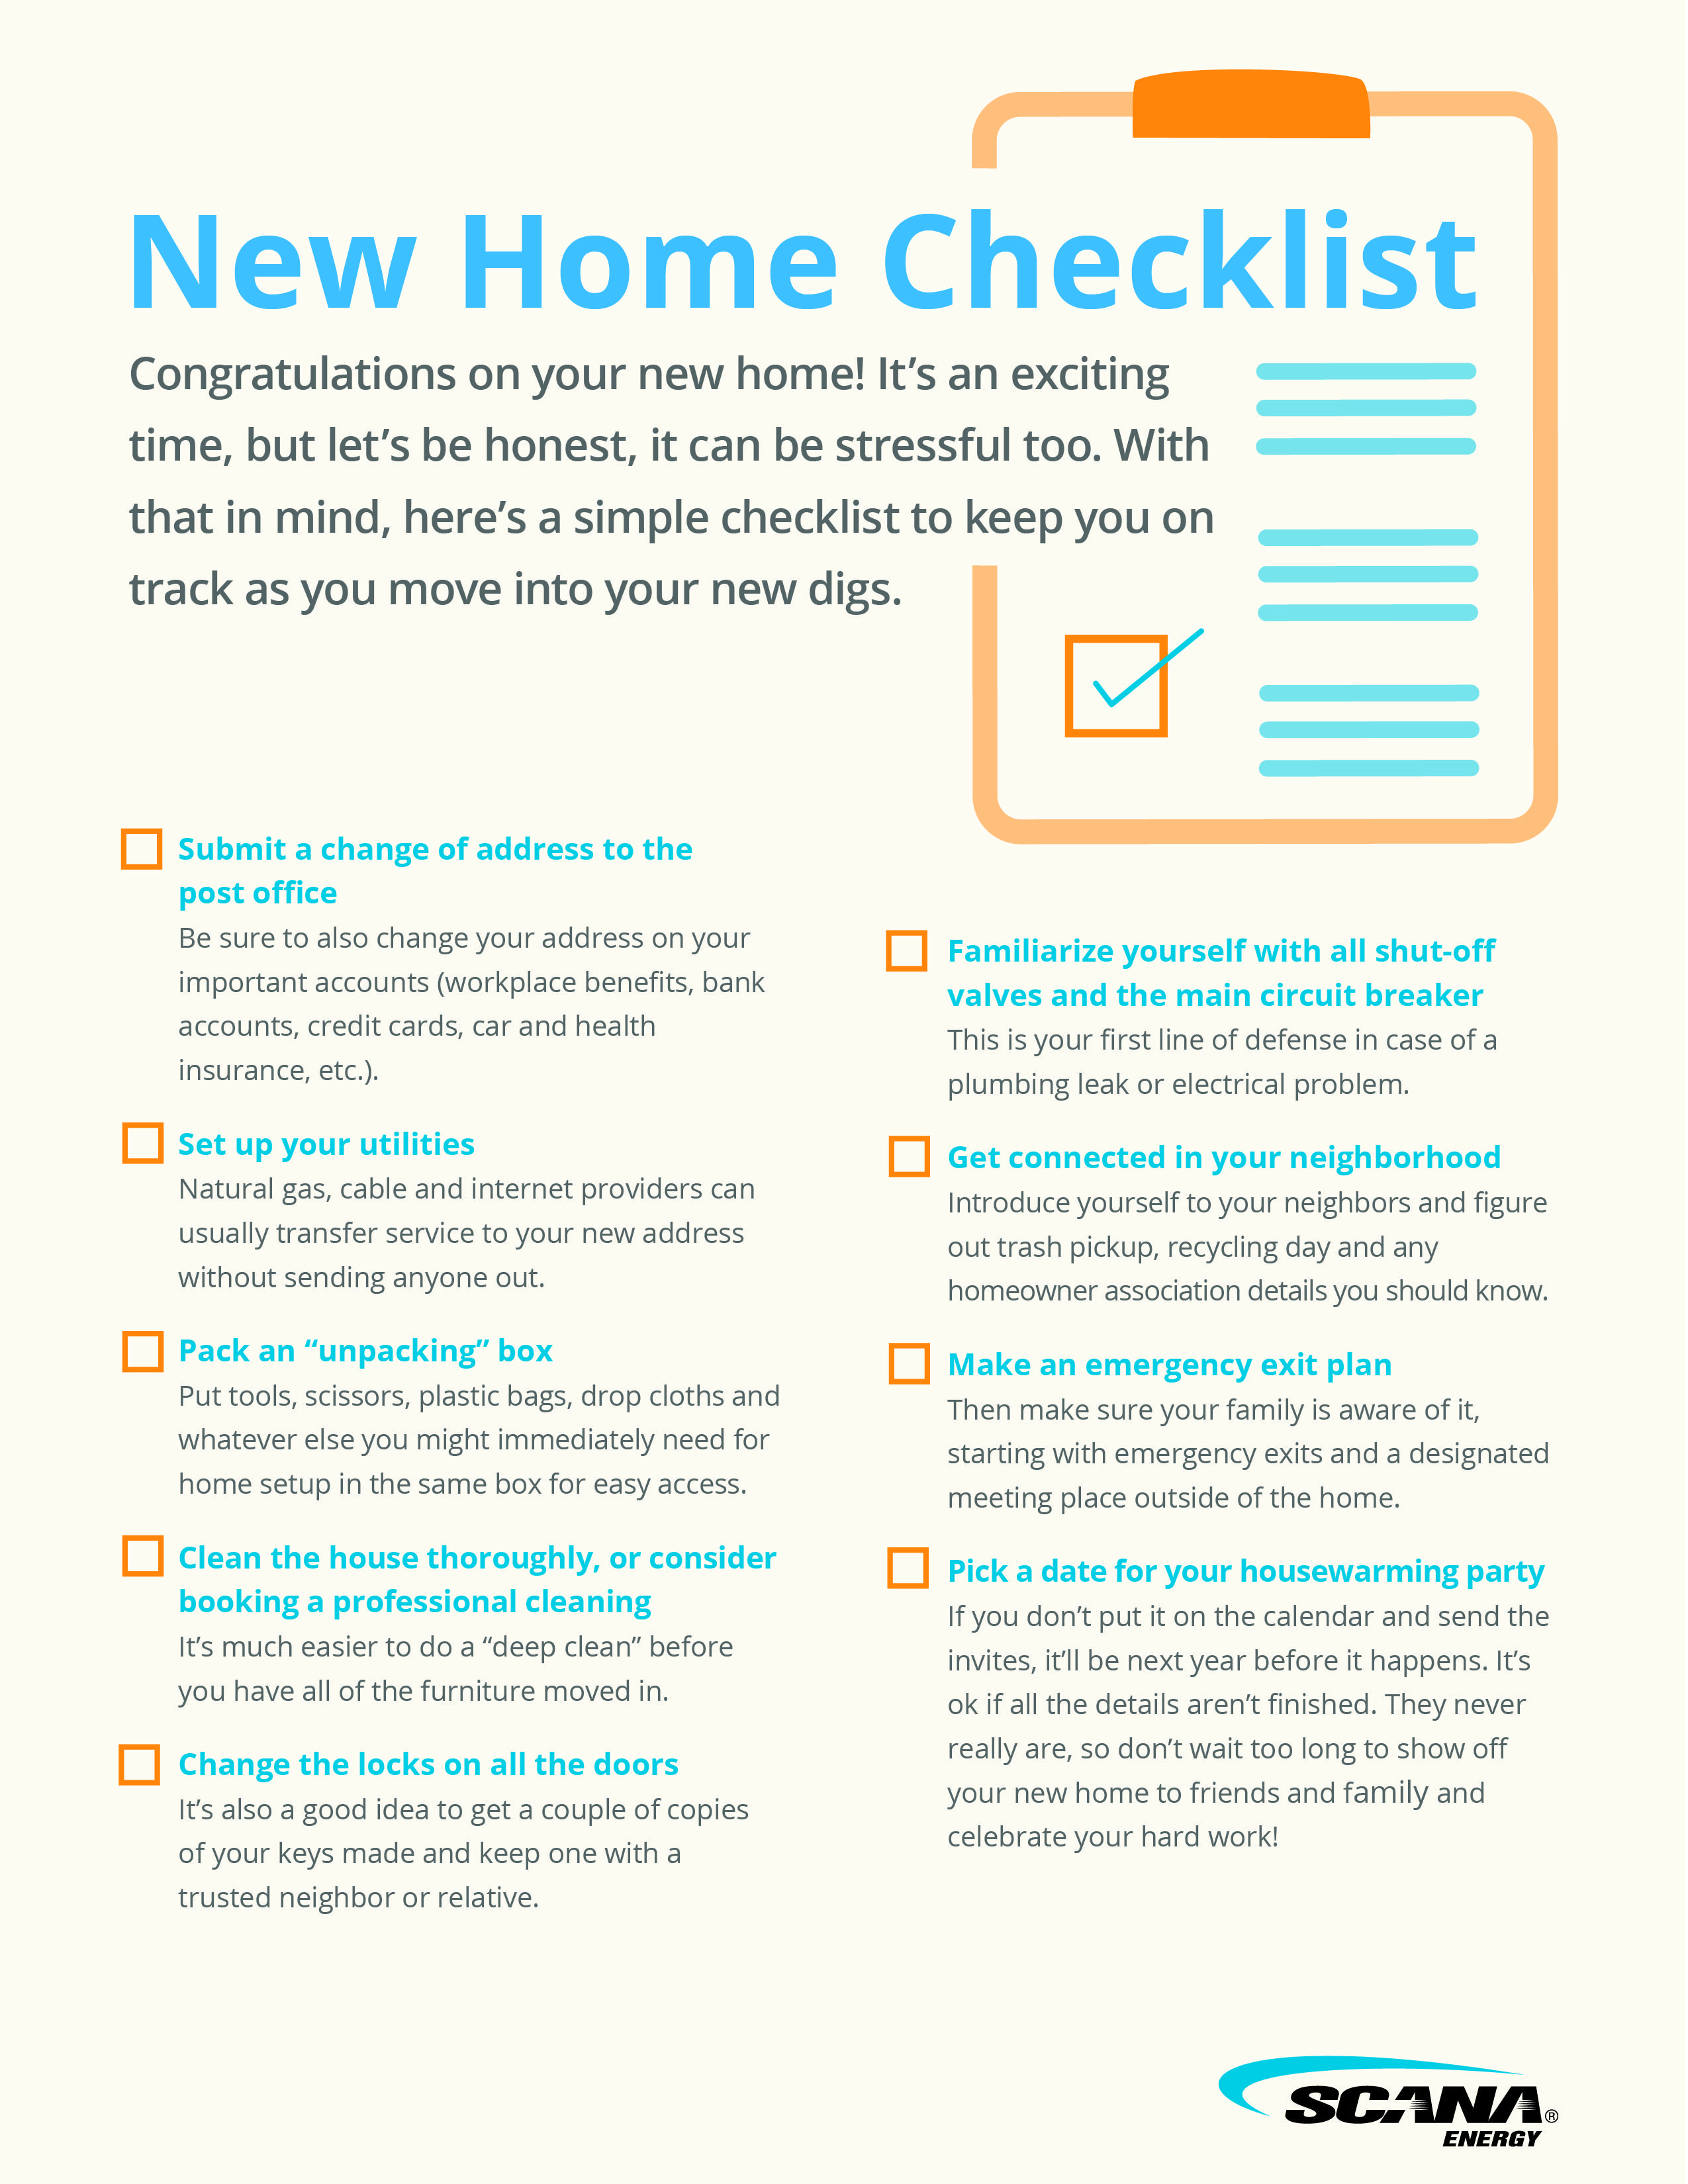 Moving You Need This New Home Checklist Scana Energy S Gaswise Blog New Home Checklist Design Center Tips New Home New Homes